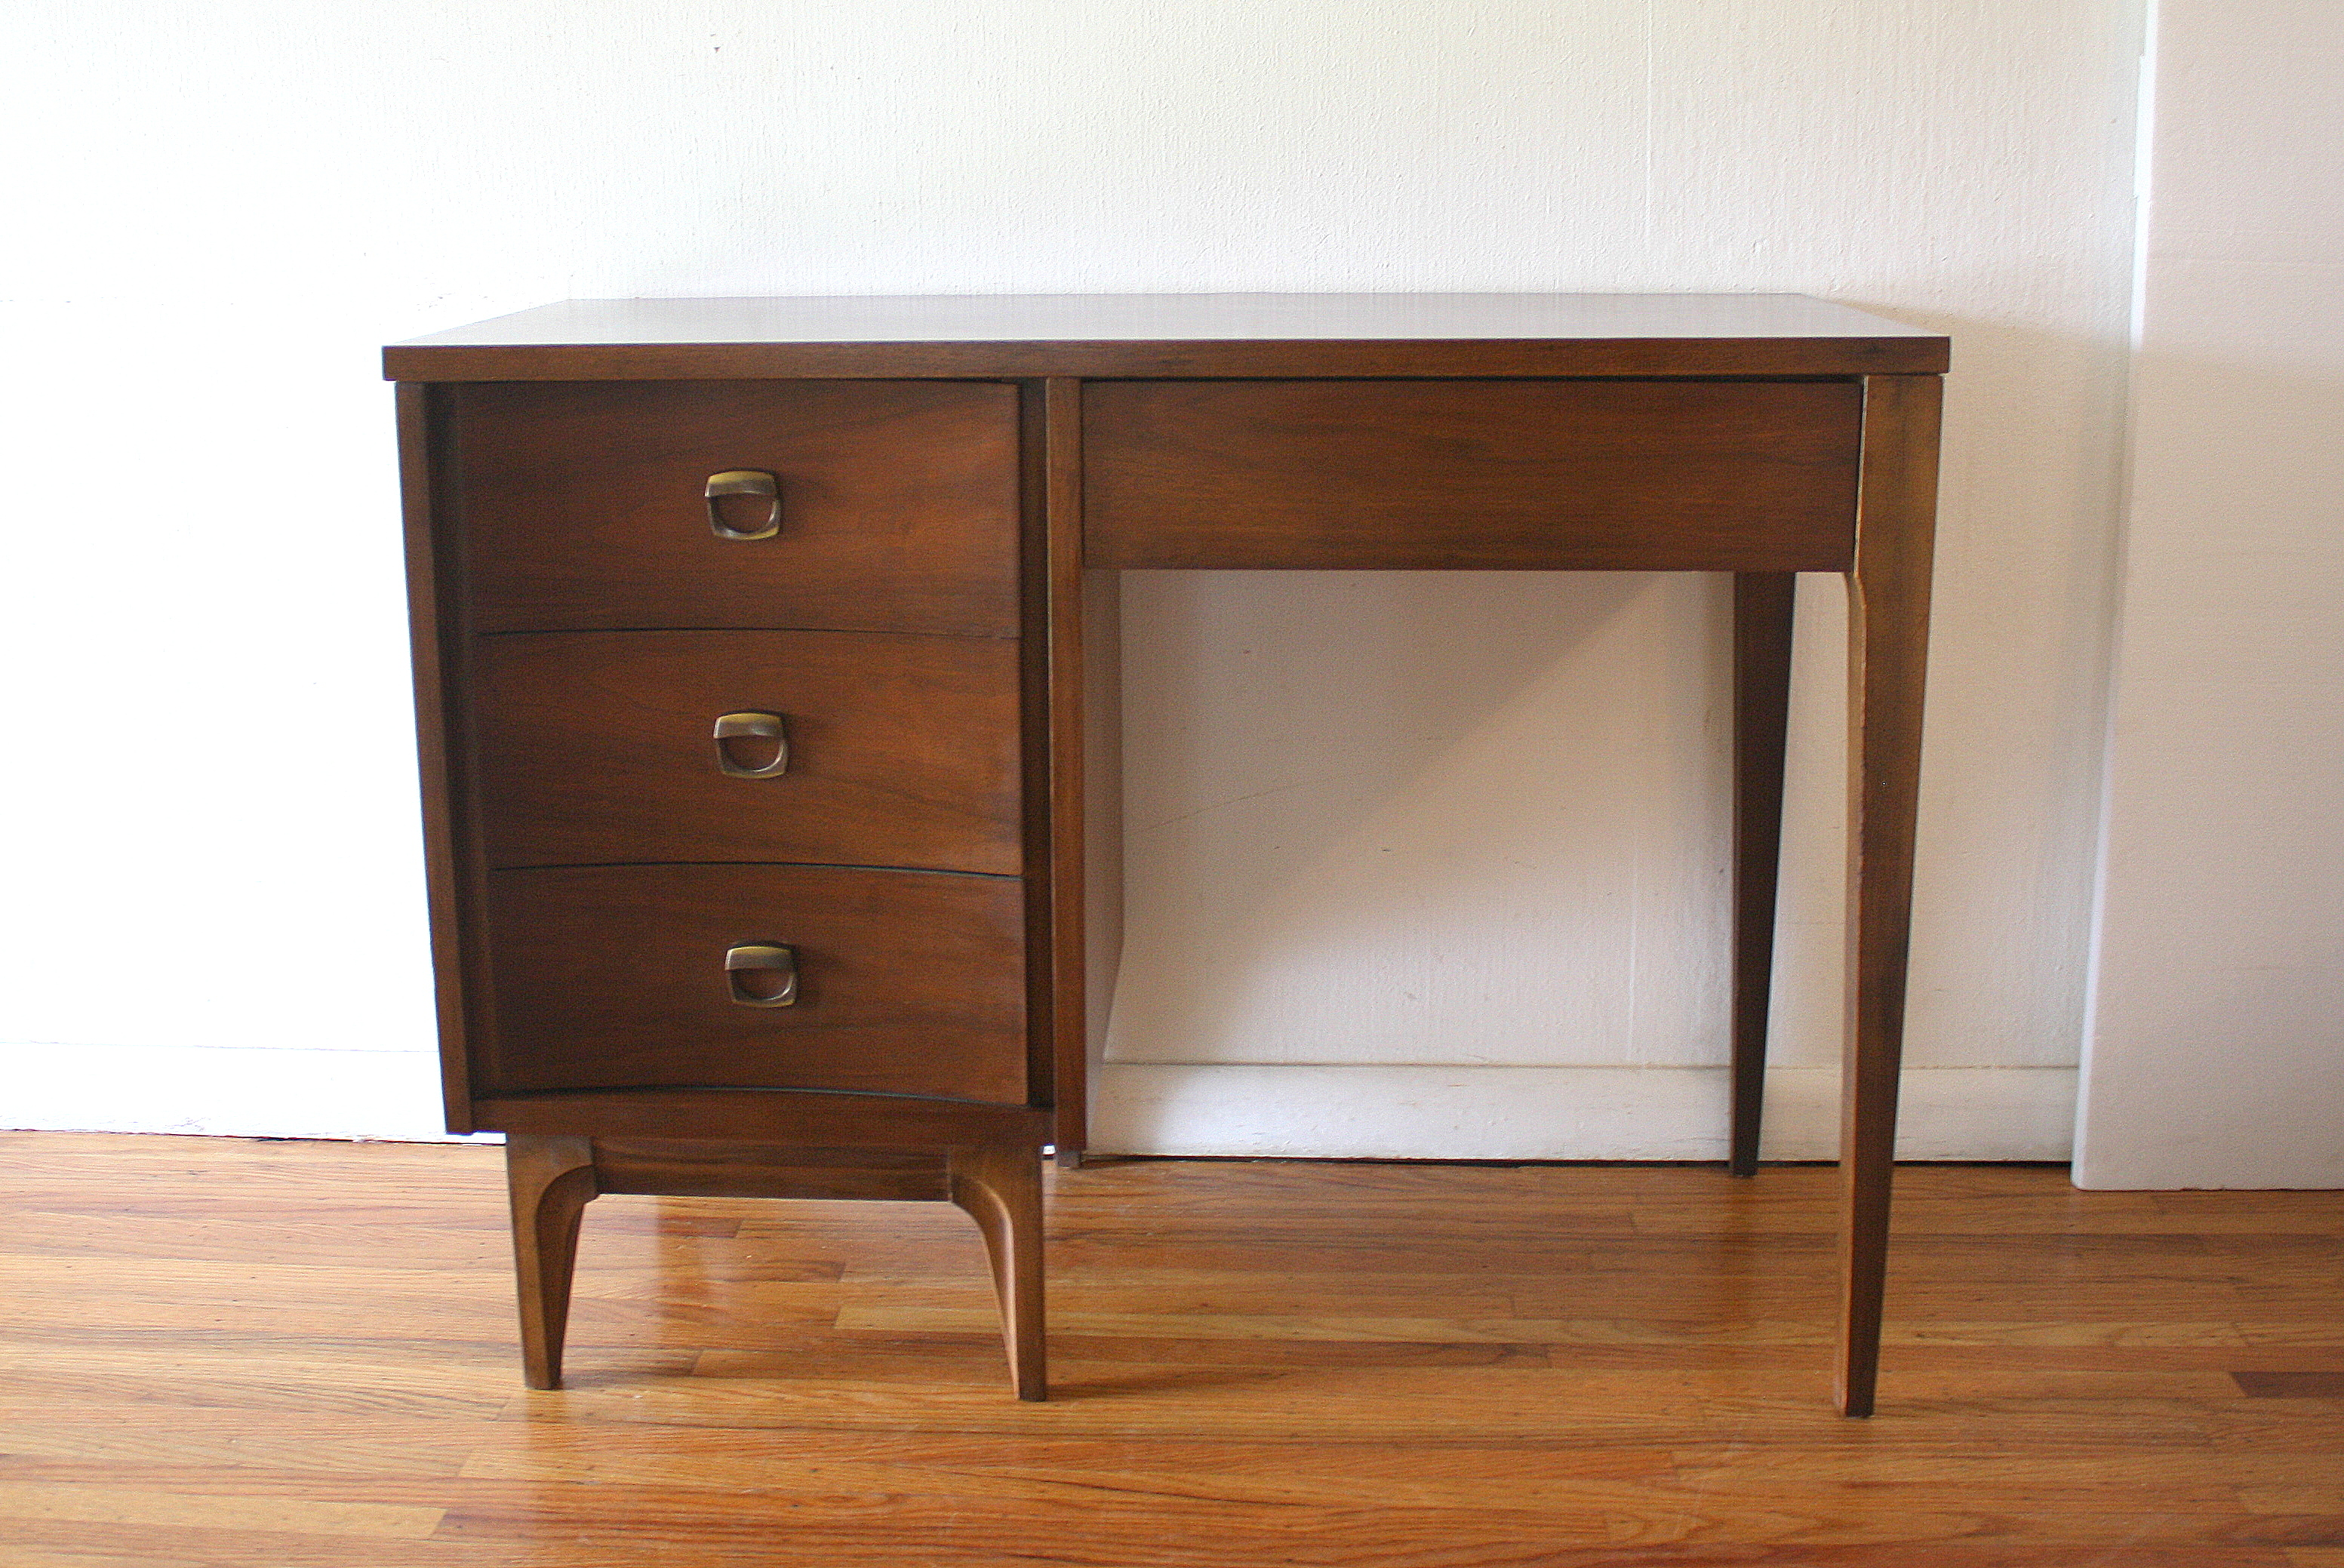 Mid Century Modern Tall Dresser and Desk by Johnson Carper